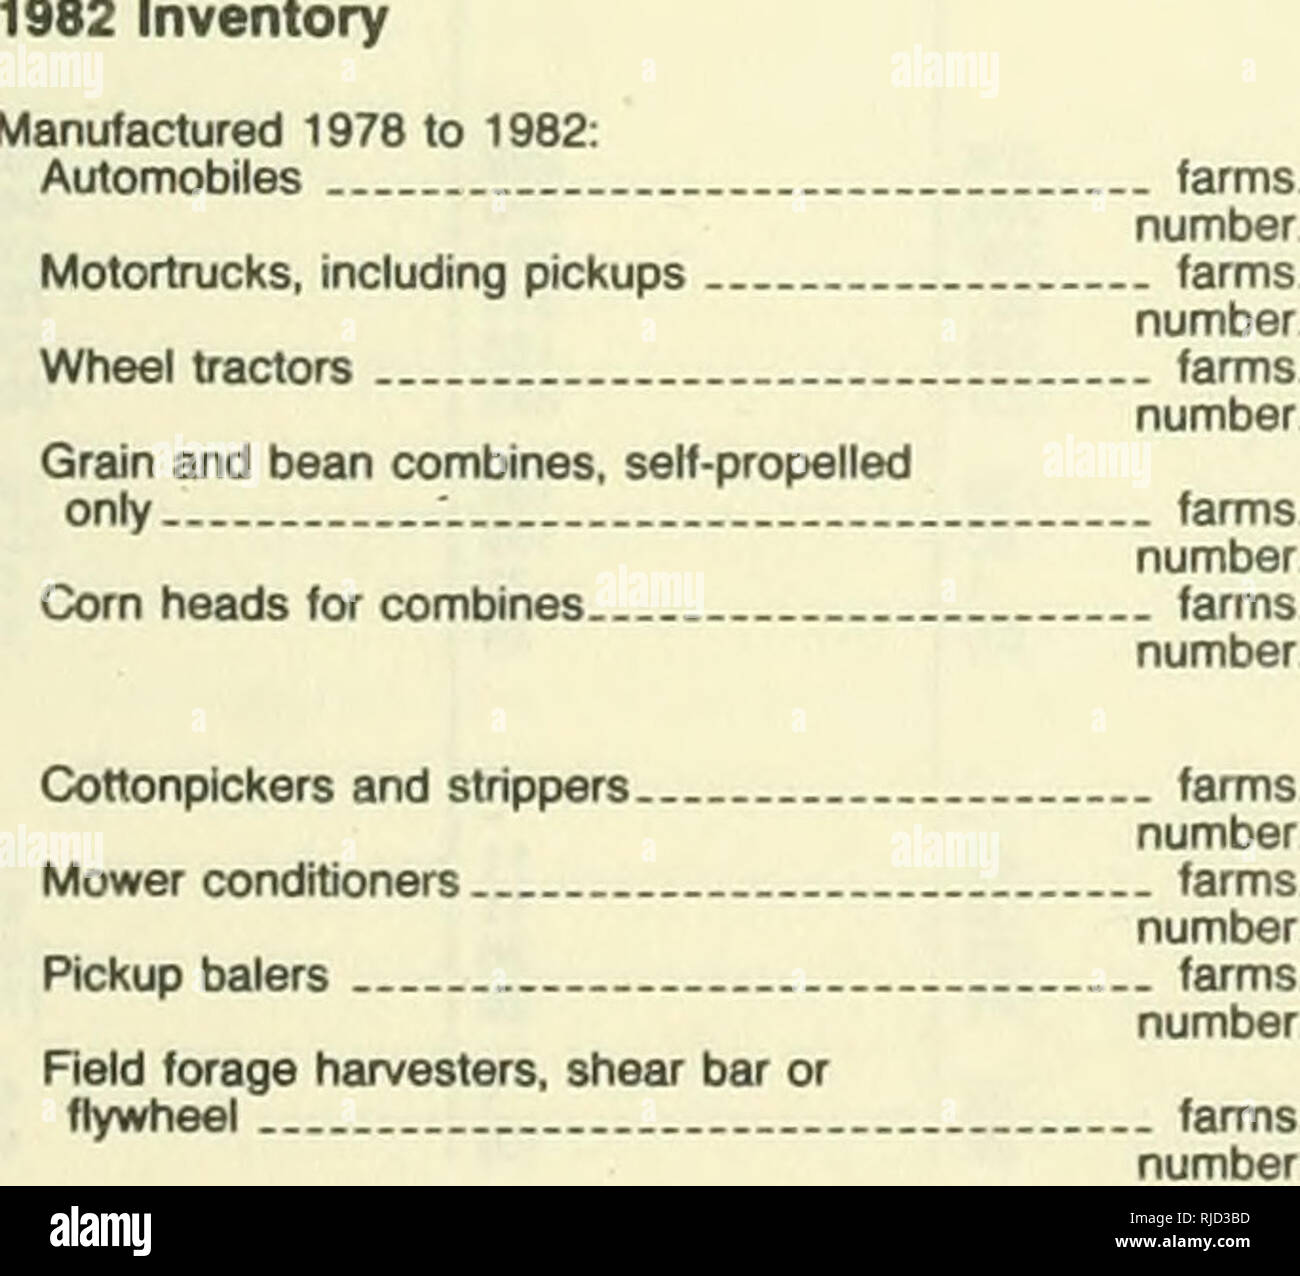 1982 census of agriculture  Agriculture  Table 8  Machinery